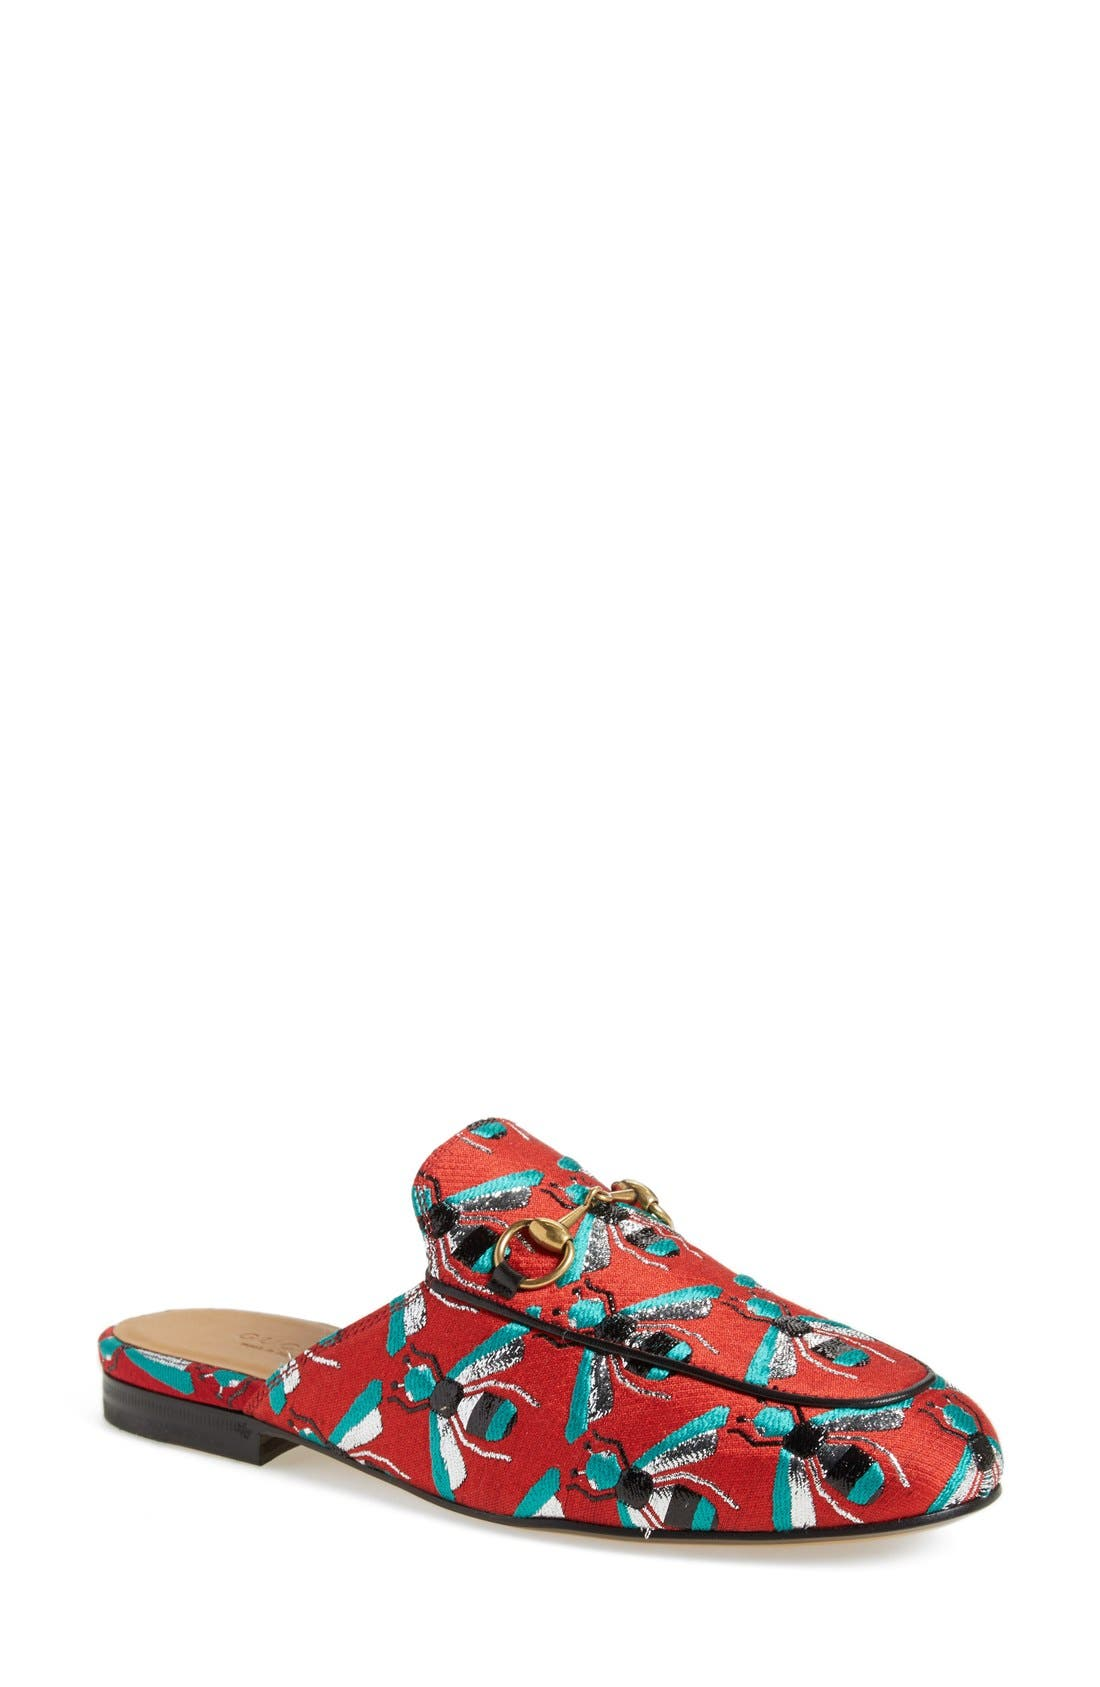 Alternate Image 1 Selected - Gucci 'Princetown' Print Mule Loafer (Women)